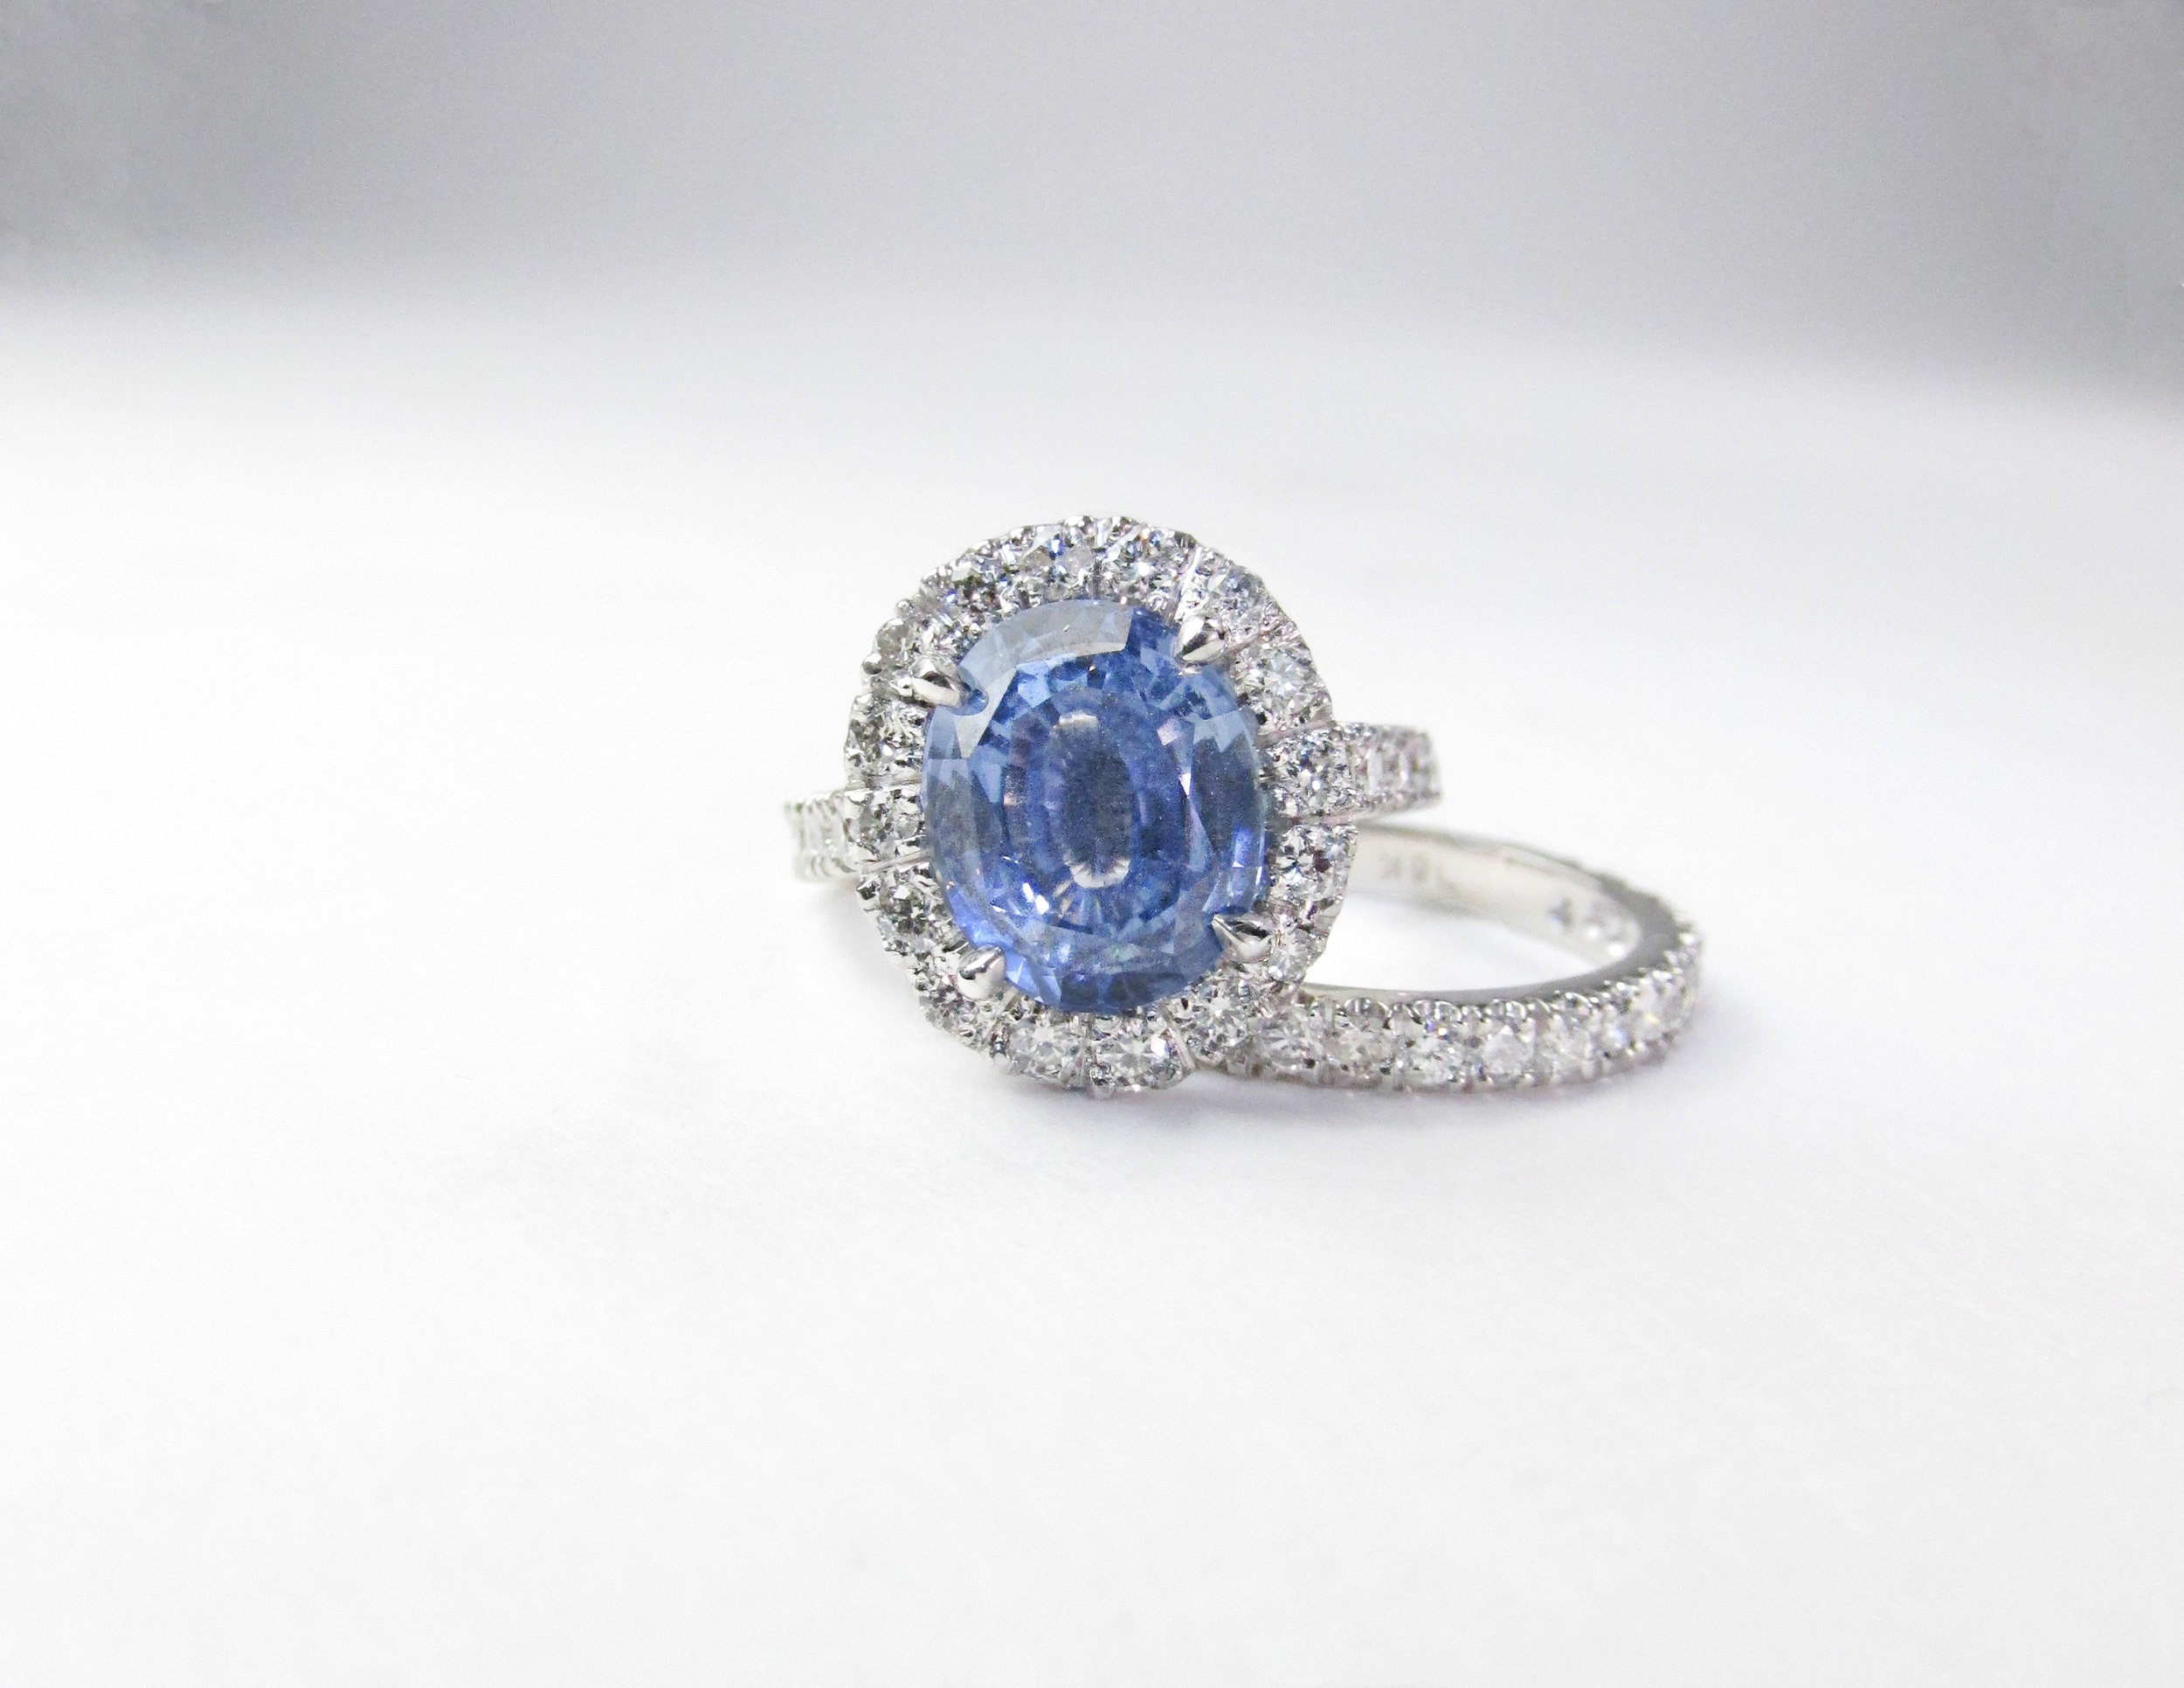 Light Blue Sapphire & Diamond Engagement Ring with Halo